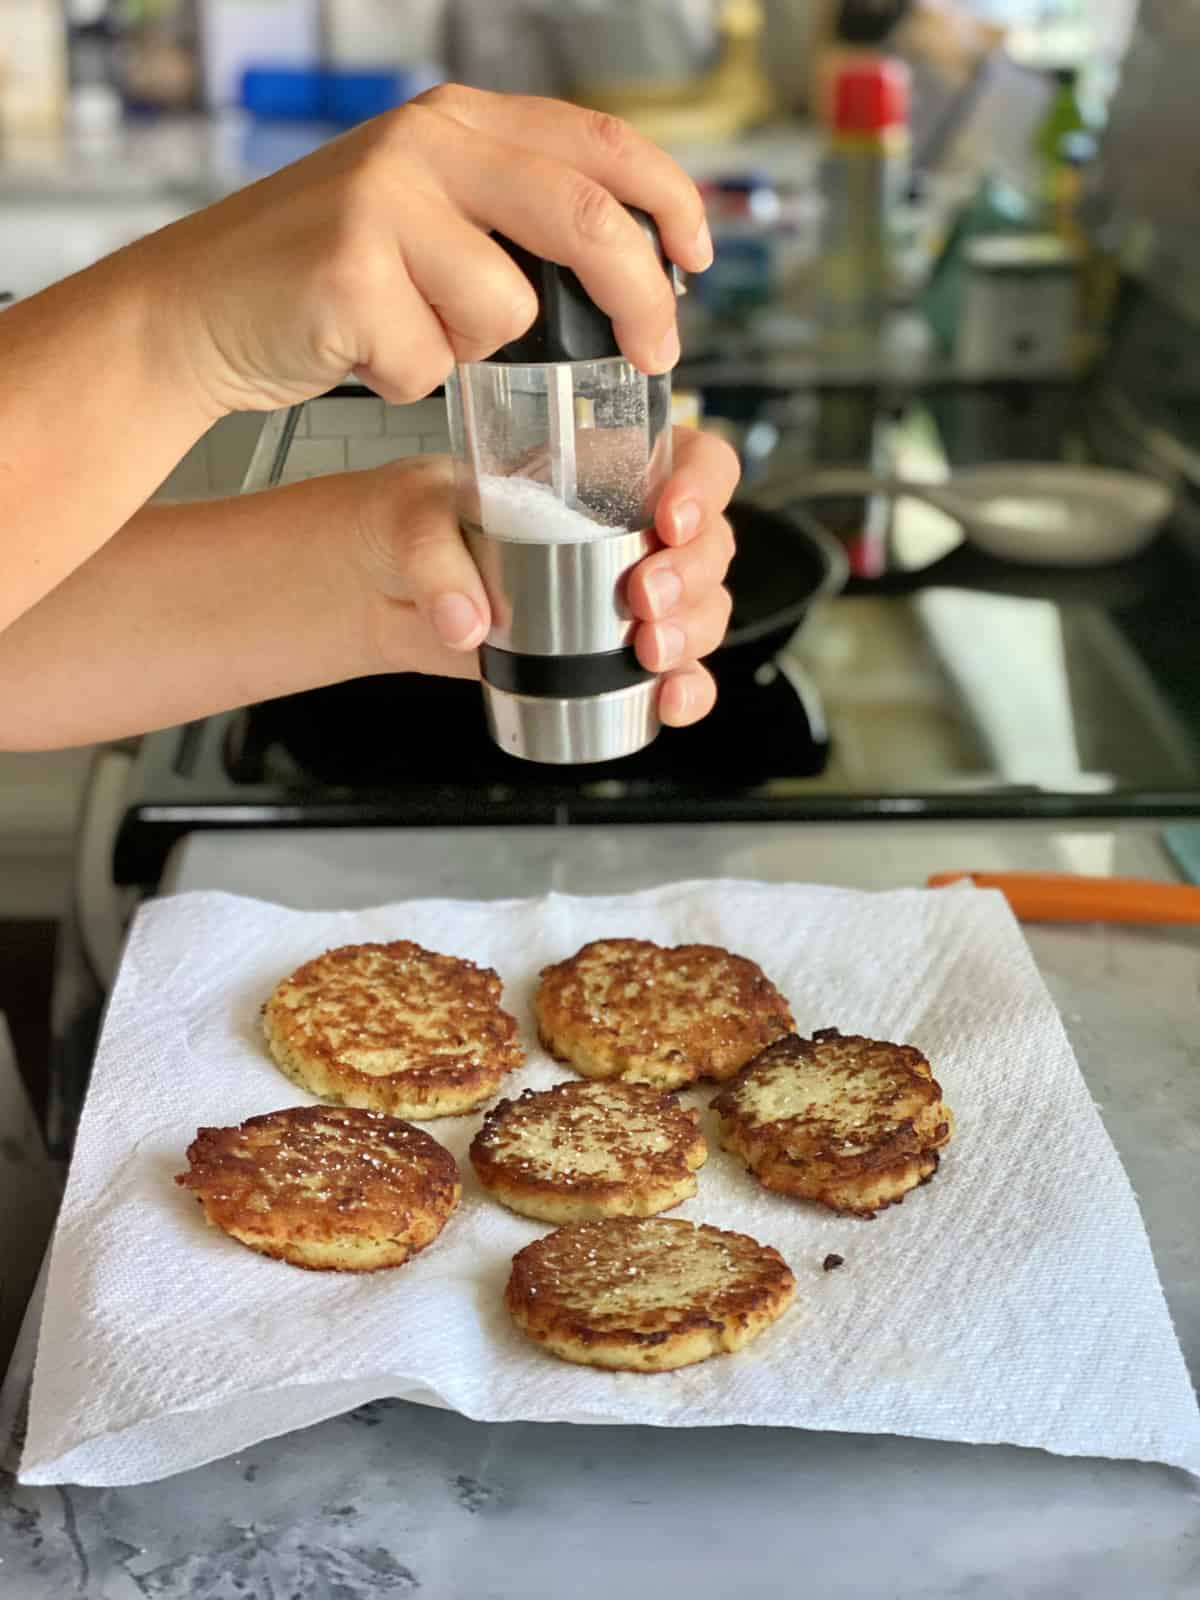 Female hand grinding salt on top of potato cakes on a paper towel lined plate.